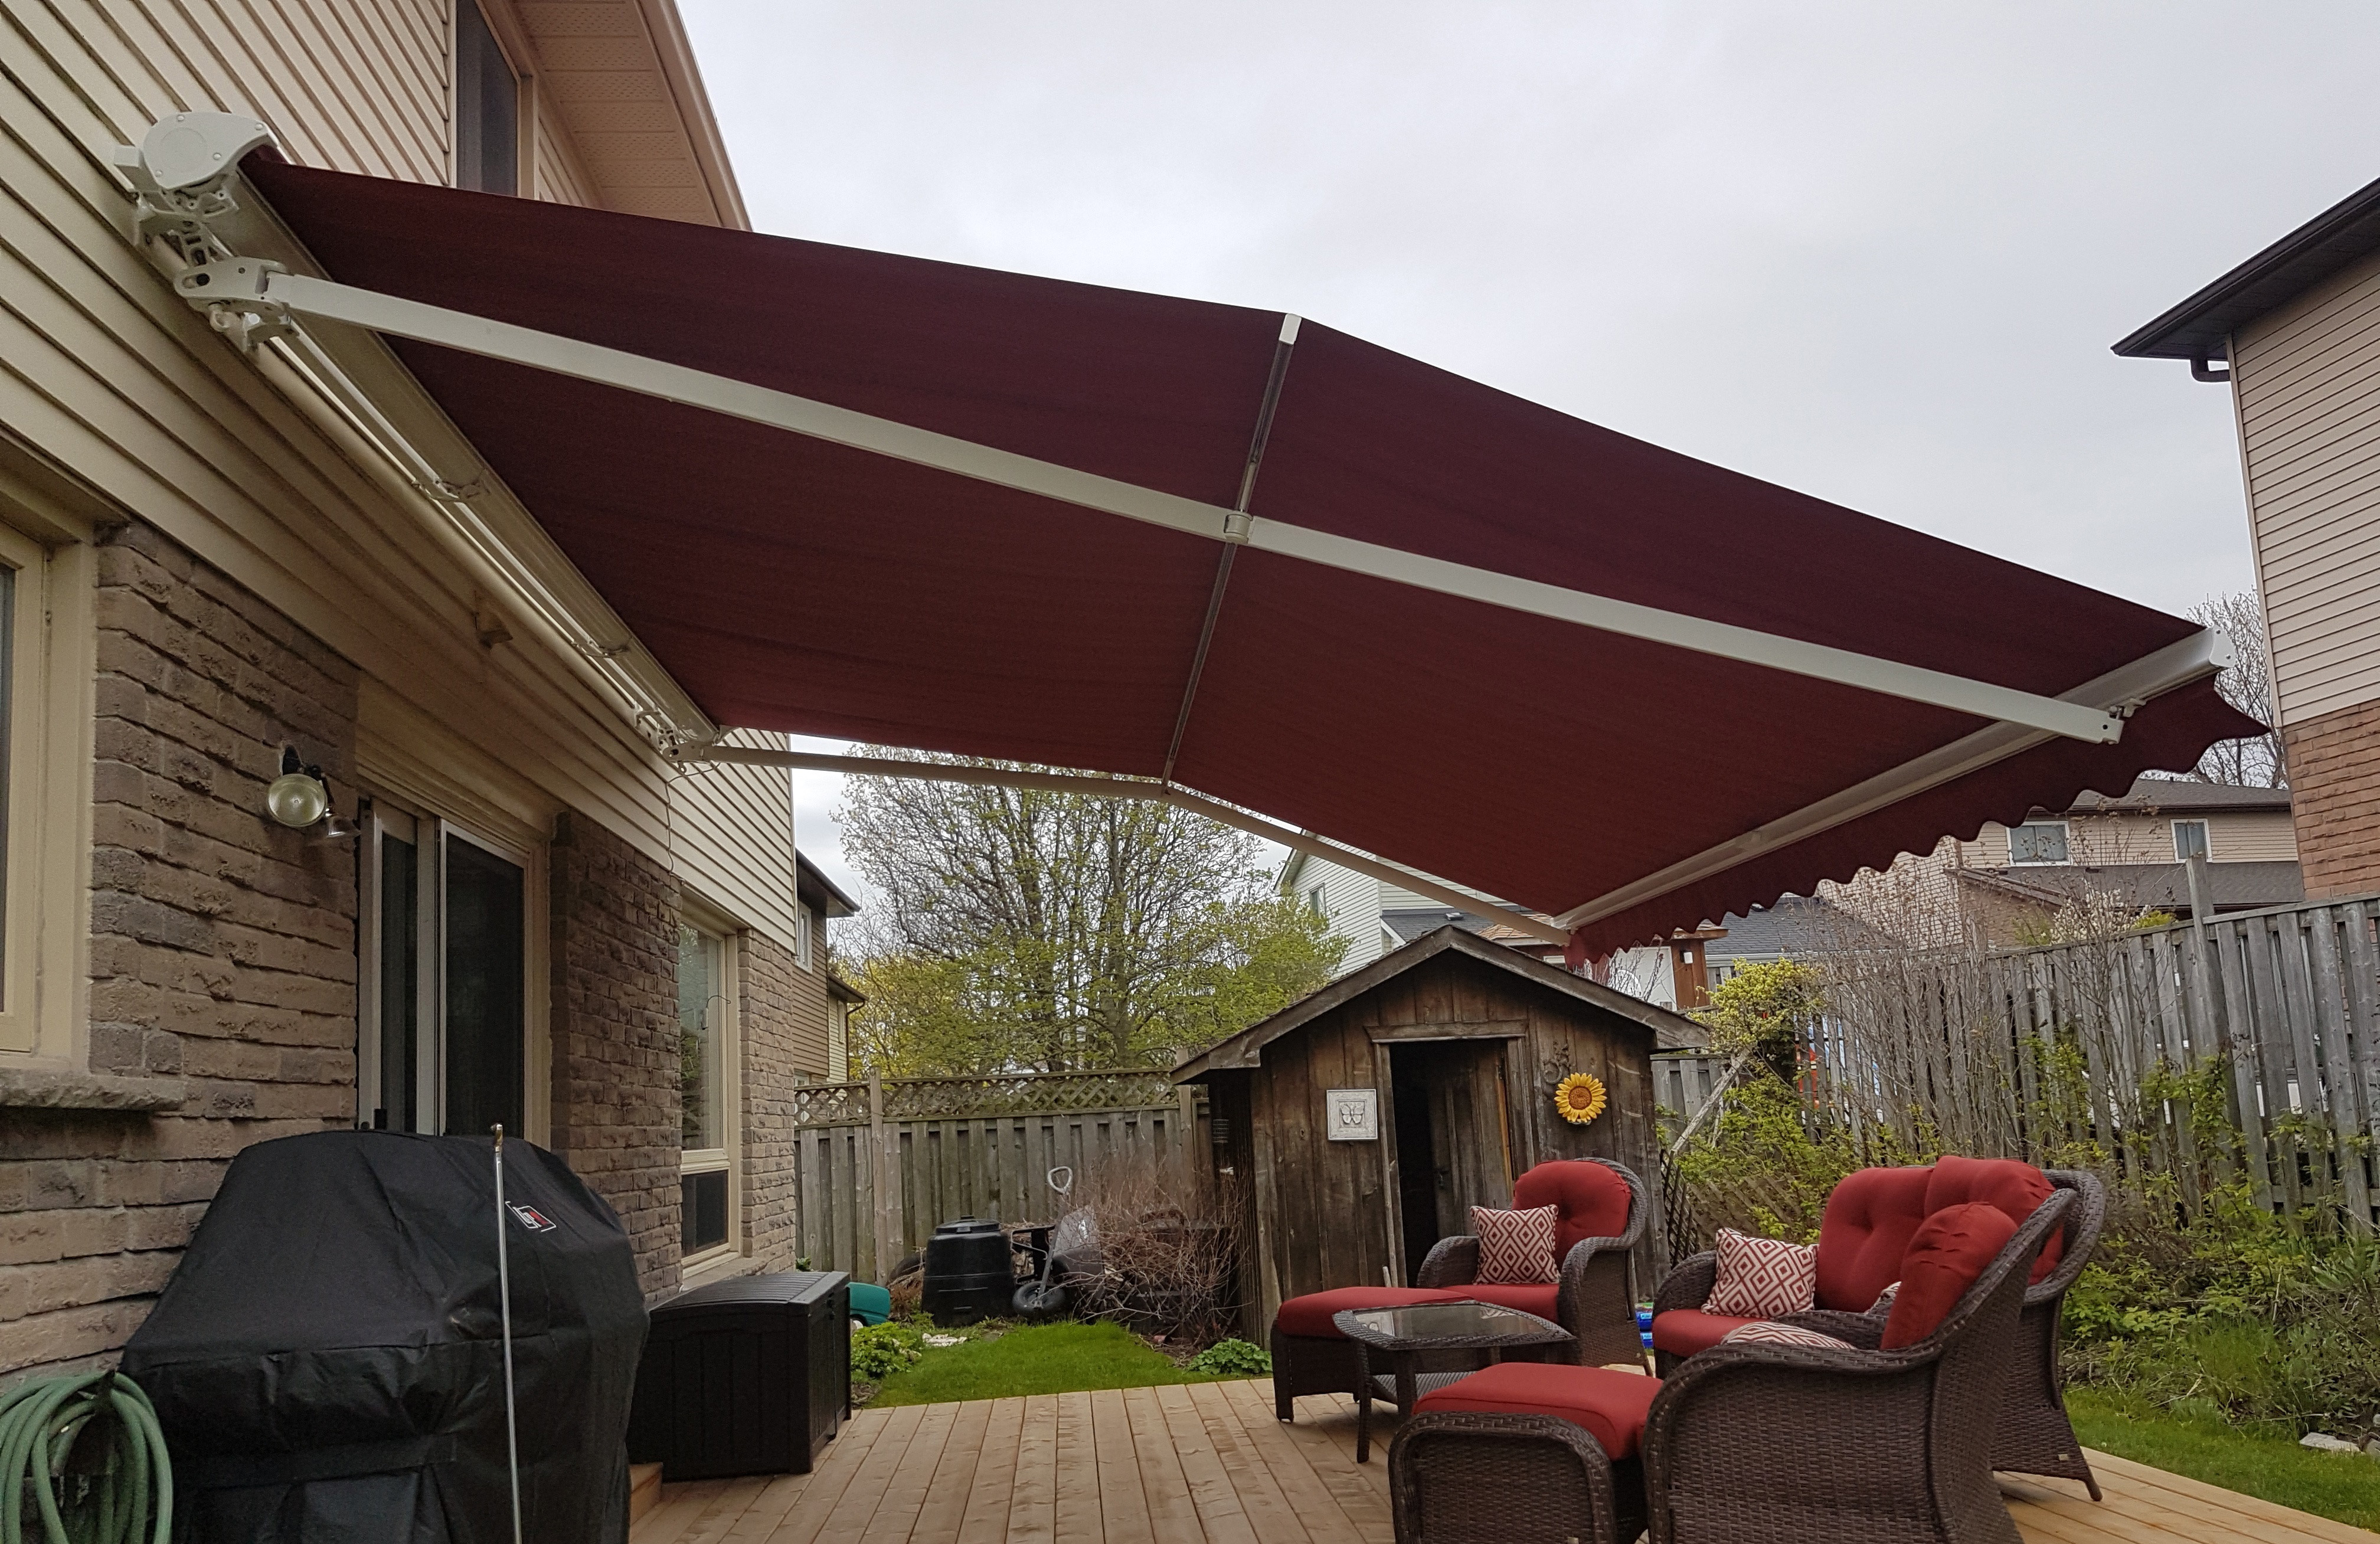 Caring for Retractable Awnings During Winter